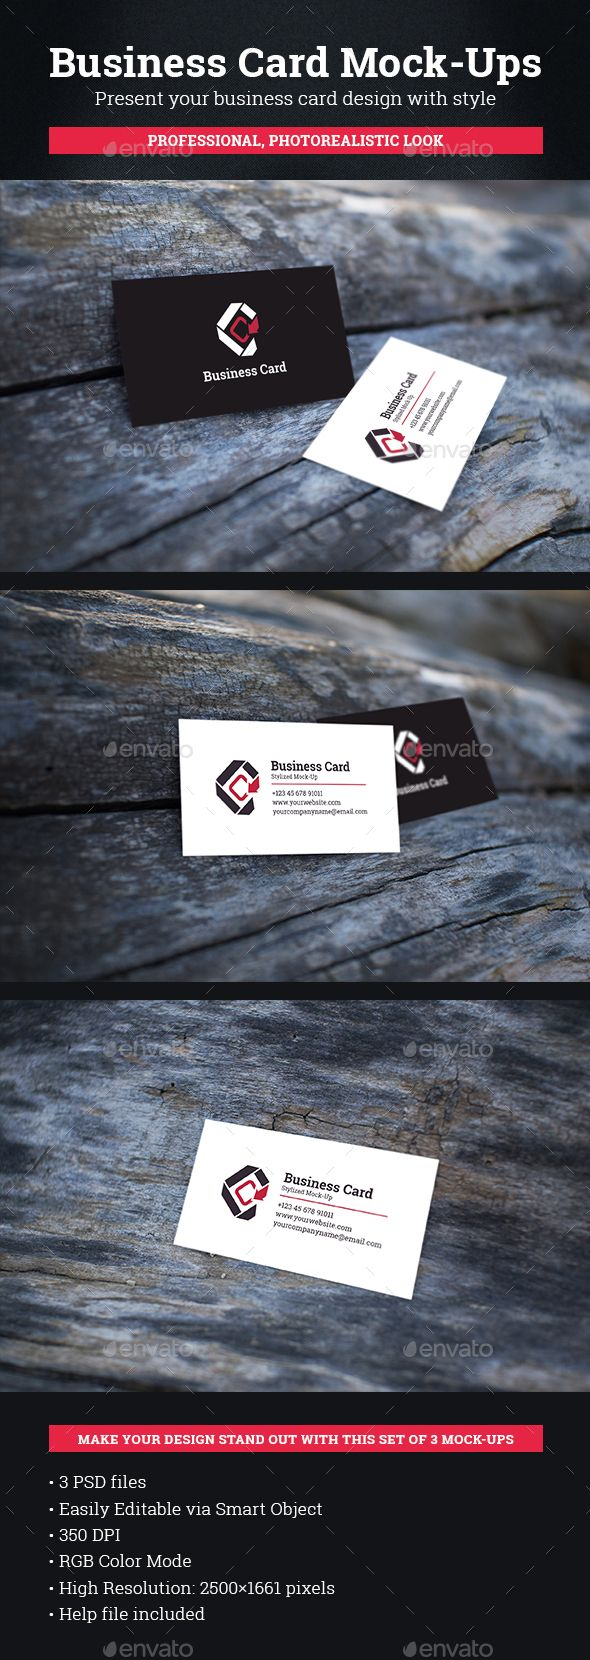 720 best business card mockup images on pinterest miniatures business card mock ups reheart Choice Image